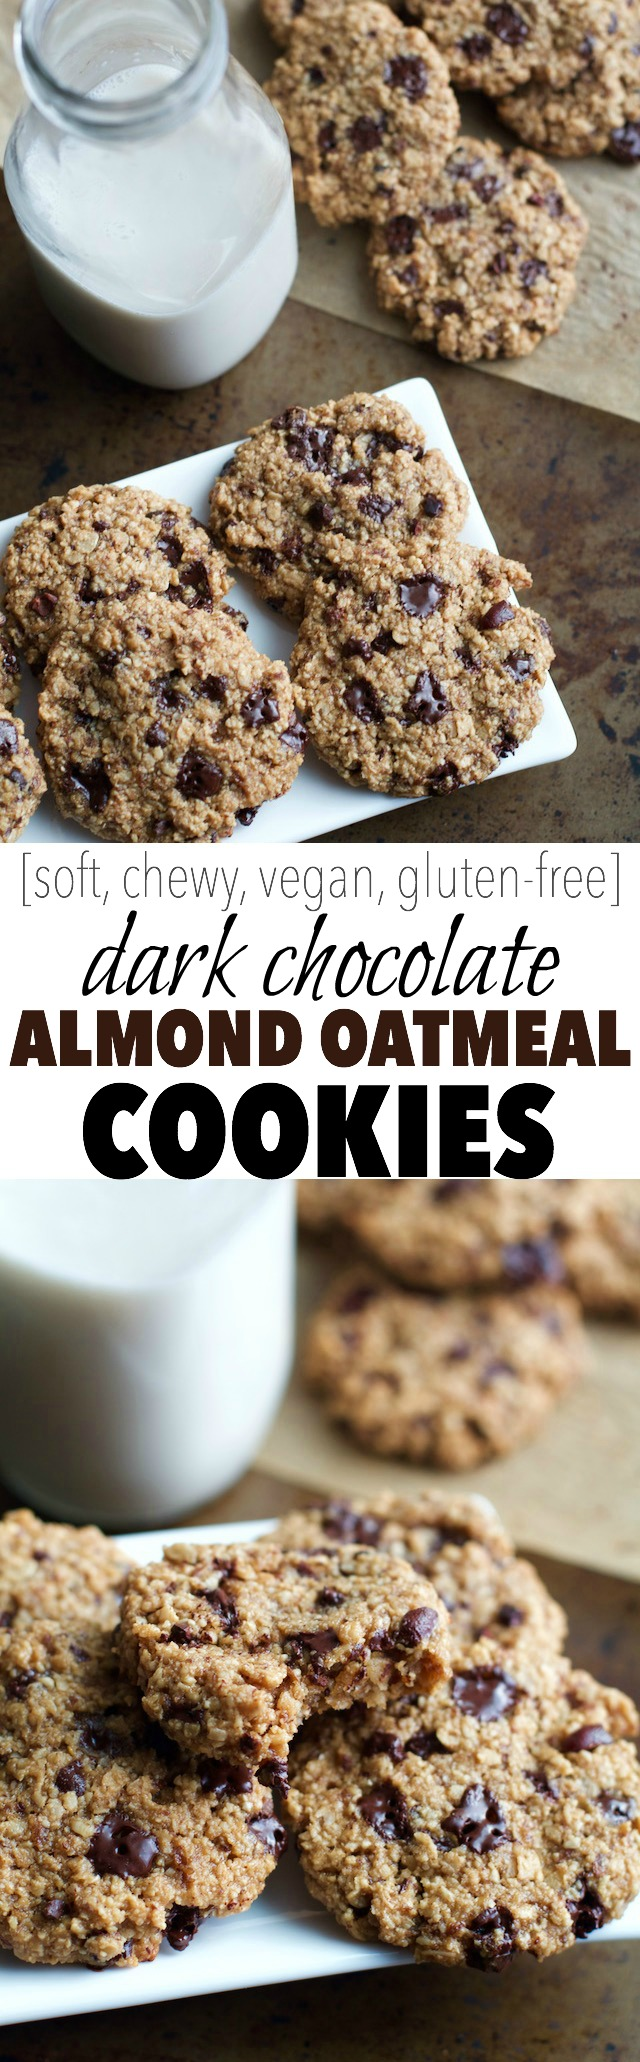 Dark Chocolate Almond Oatmeal Cookies -- a deliciously chocolatey cookie made without flour, butter, or eggs, but so soft and chewy that you'd never be able to tell! || runningwithspoons.com #vegan #glutenfree #healthy #recipe